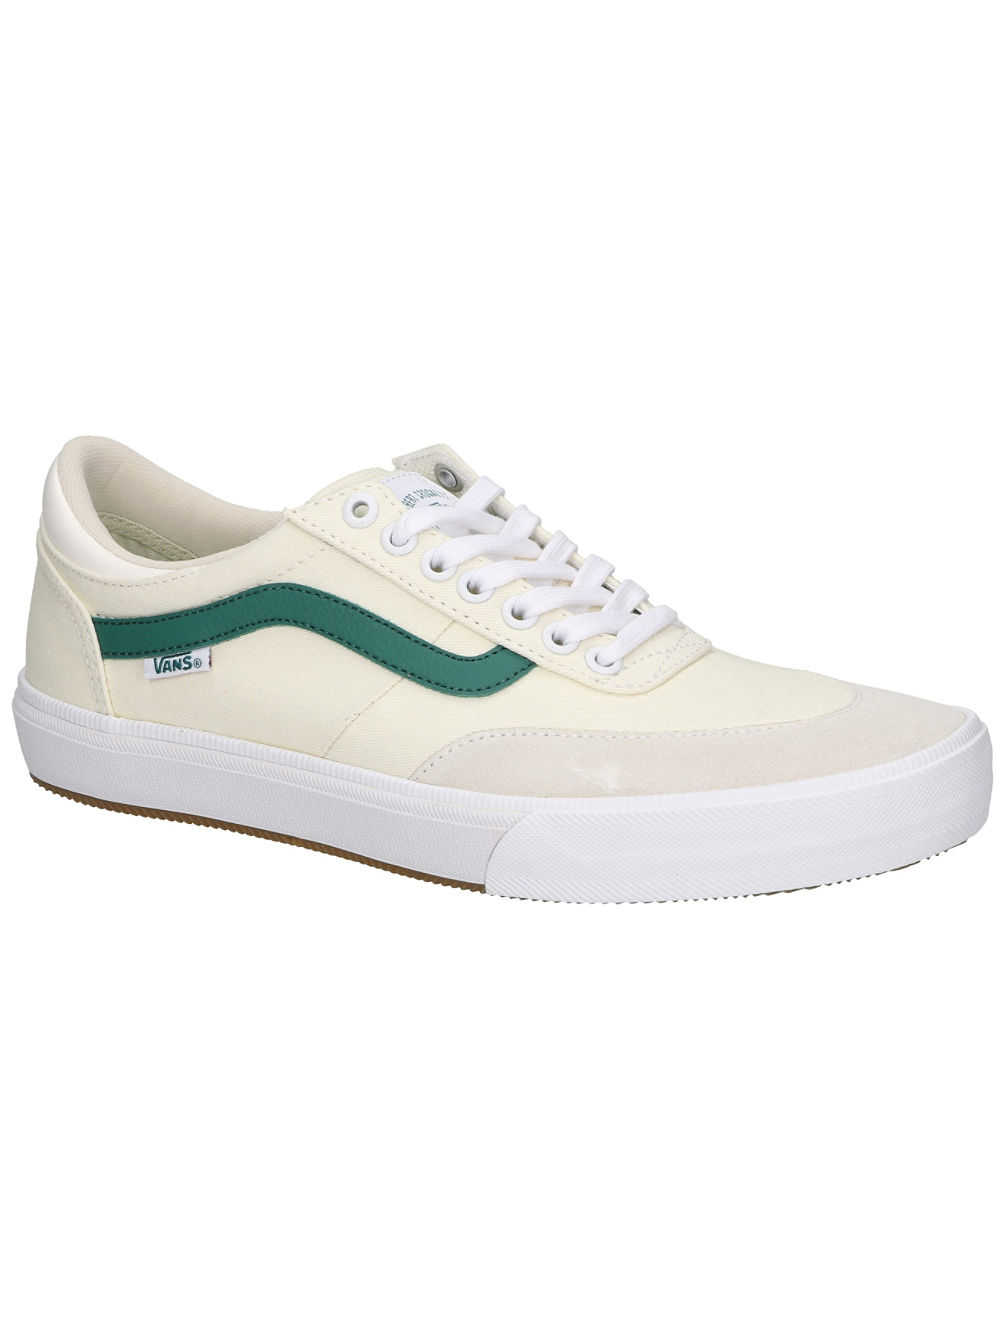 42ac942632 Buy Vans Center Court Gilbert Crockett 2 Pro Skat online at Blue Tomato